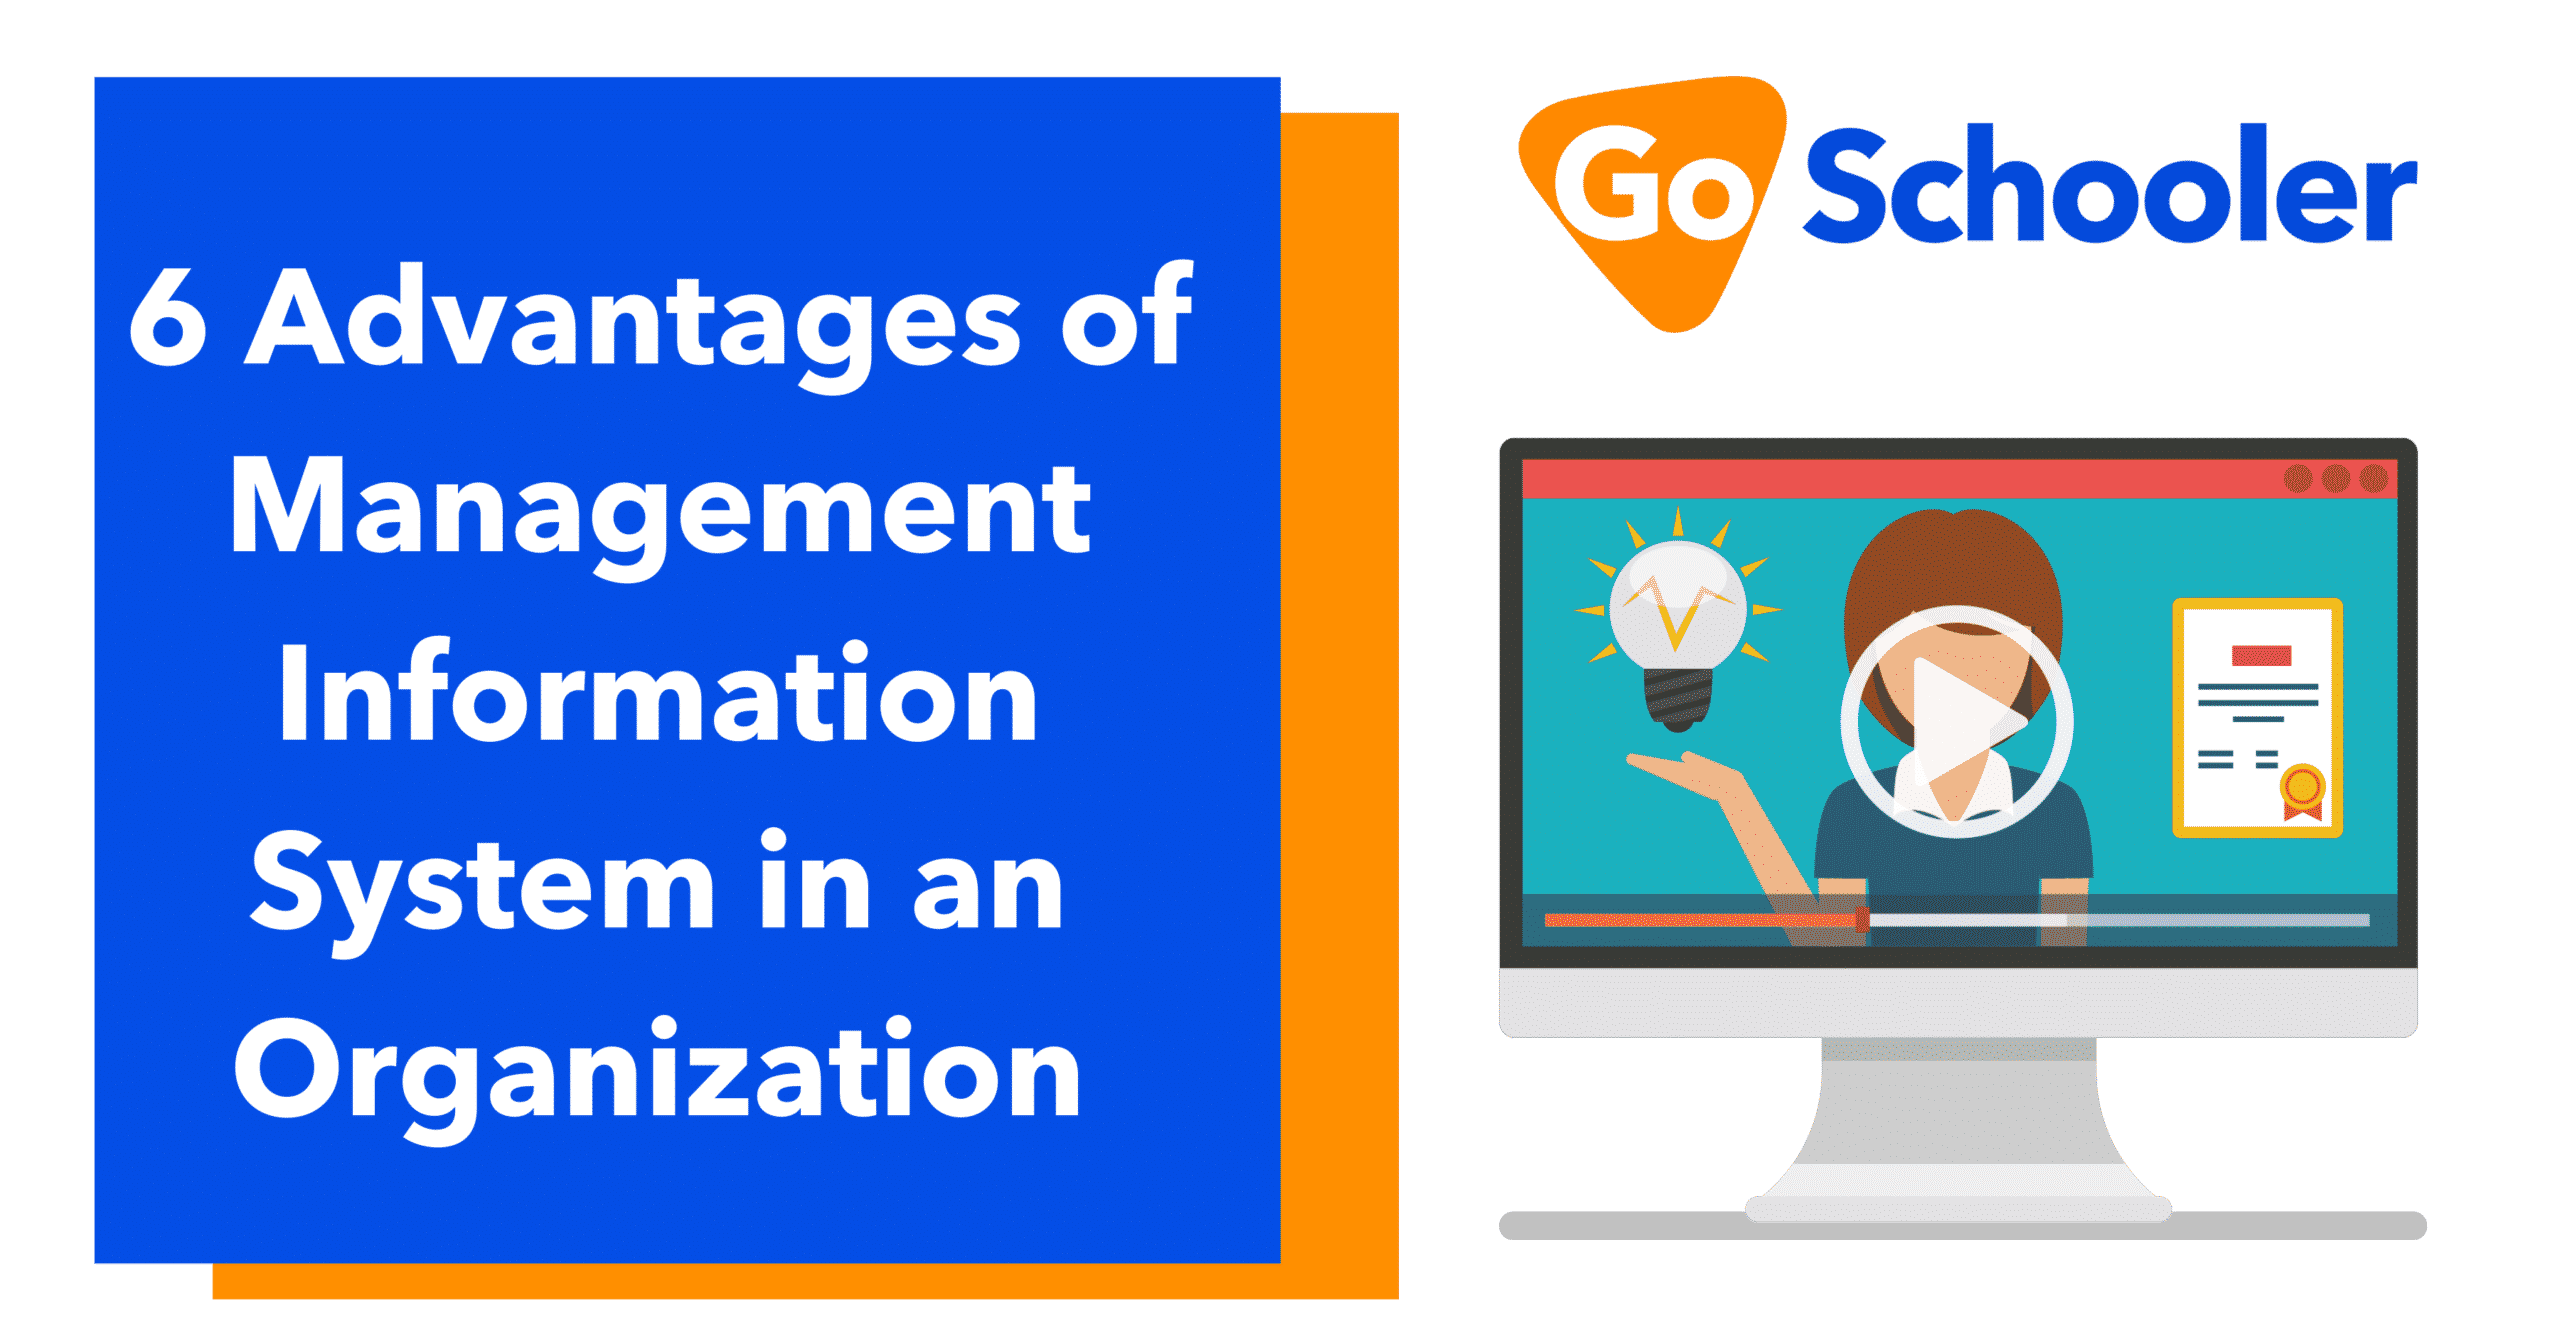 Advantages of Management Information System in an Organization